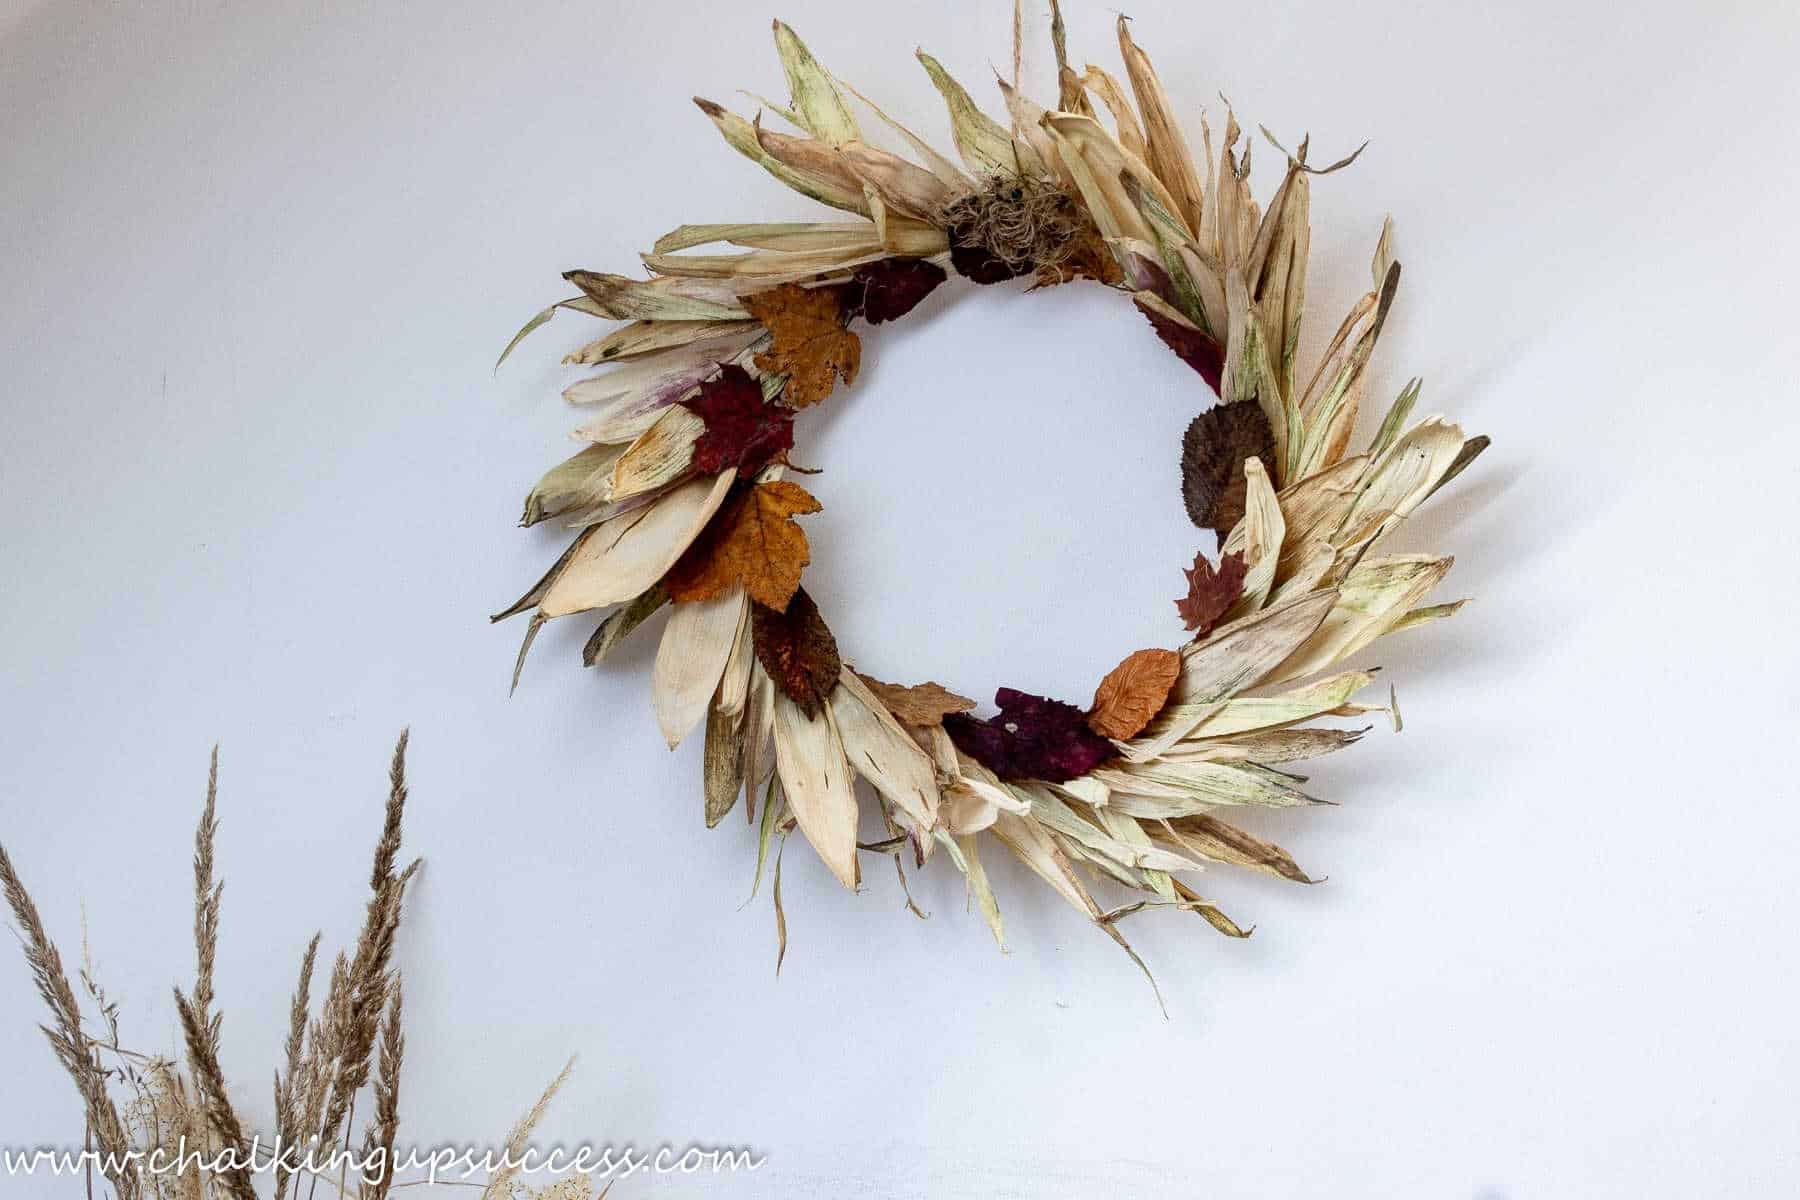 Shows the completed corn husk autumn wreath hanging against a white wall.